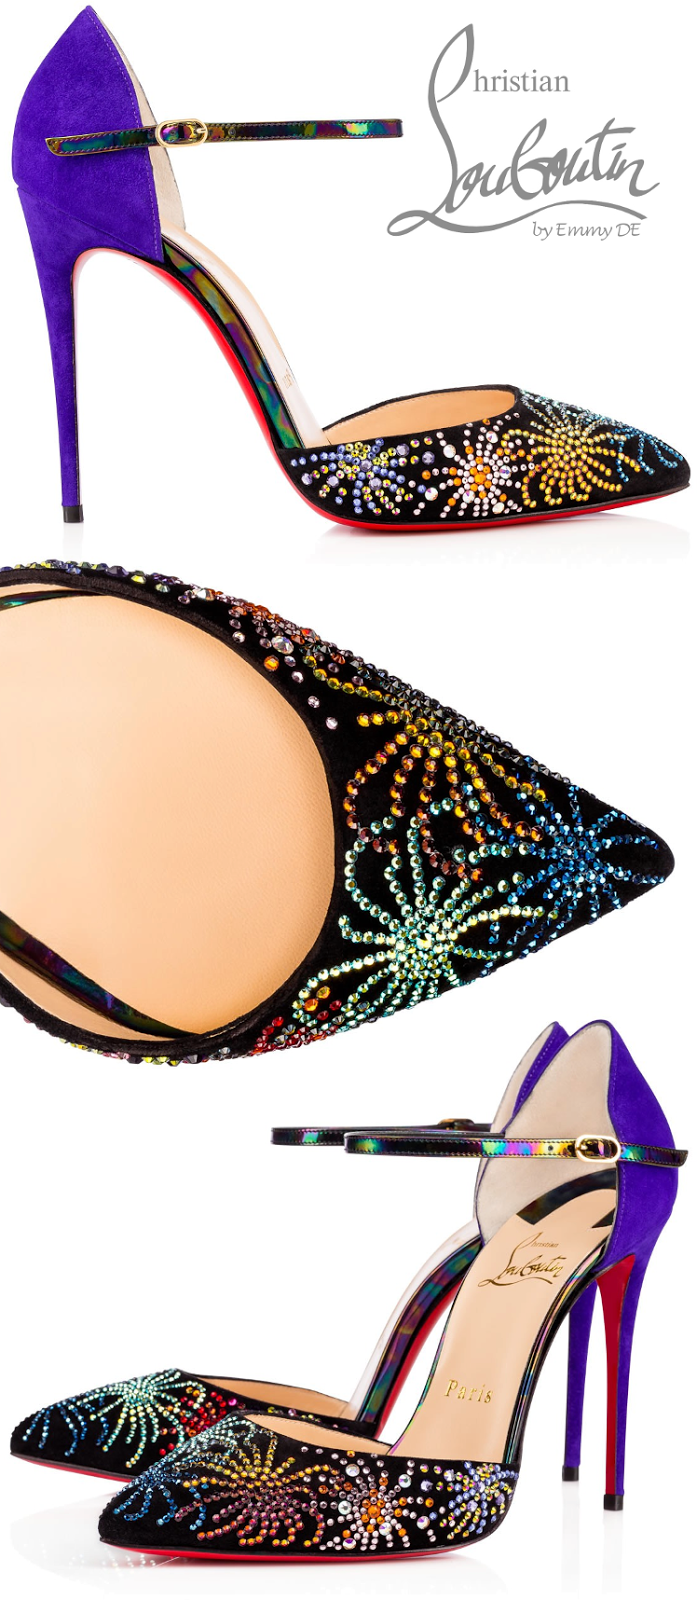 Brilliant Luxury ♦ Christian Louboutin Rivierina On Fire Veau Velours Sling Pumps